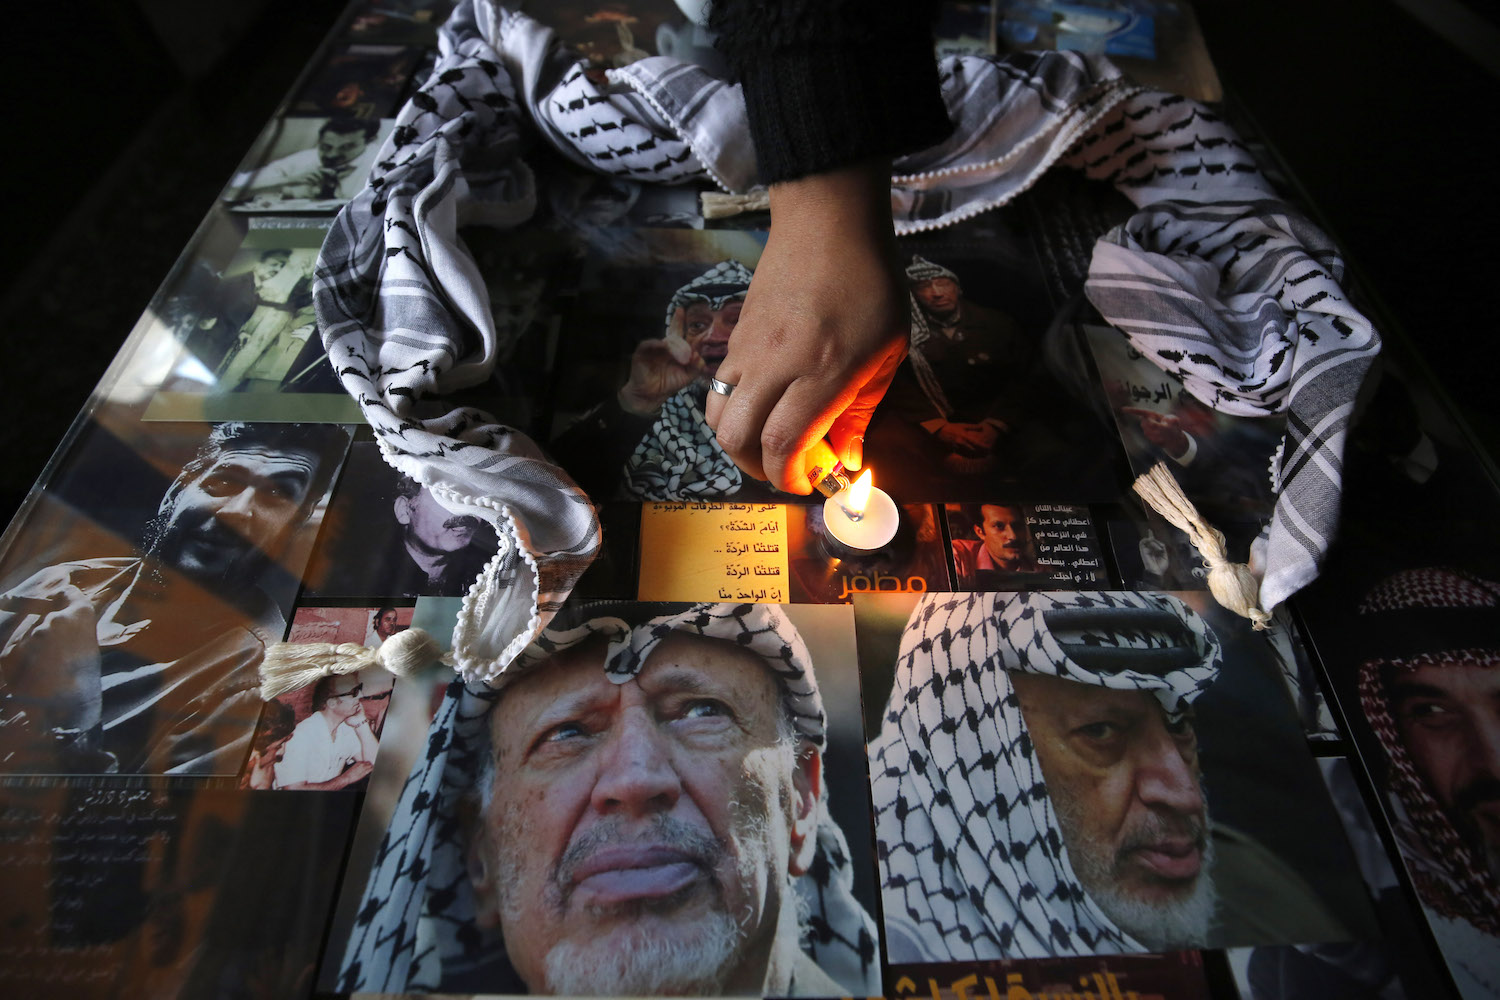 A Palestinian woman lights a candle over portraits of late leader Yasser Arafat at the start of celebrations marking the 13th anniversary of his death, in the West Bank city of Ramallah, on Nov. 9.      Abbas Momani/AFP/Getty Images